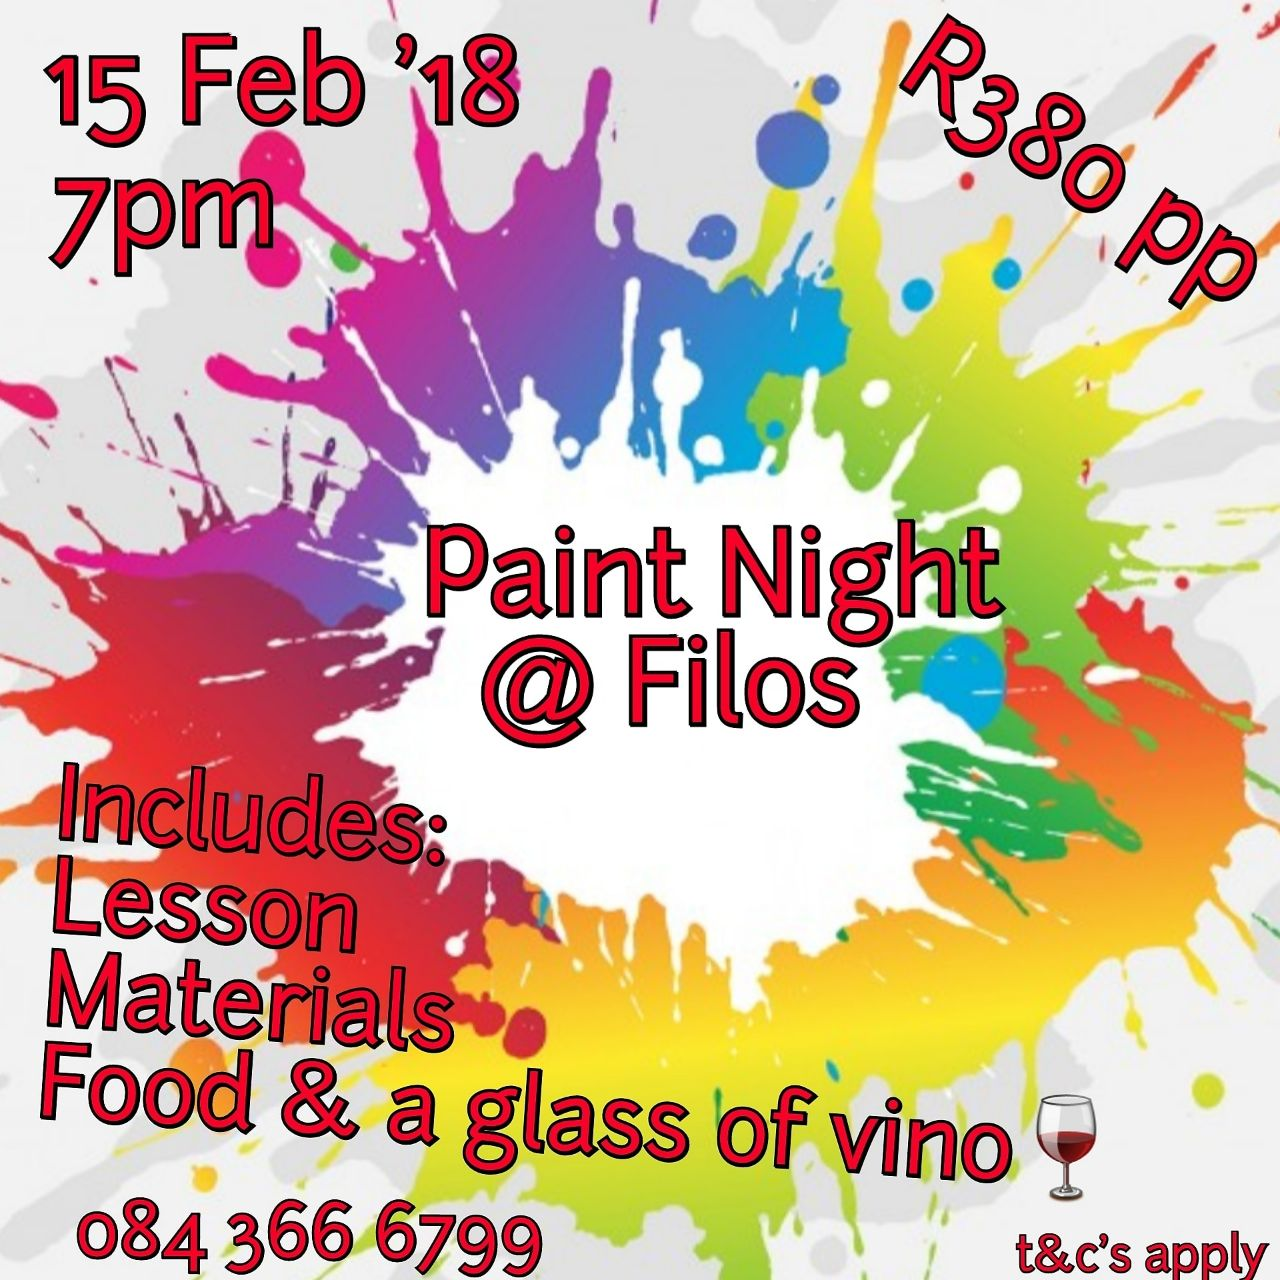 Filos Paint Night